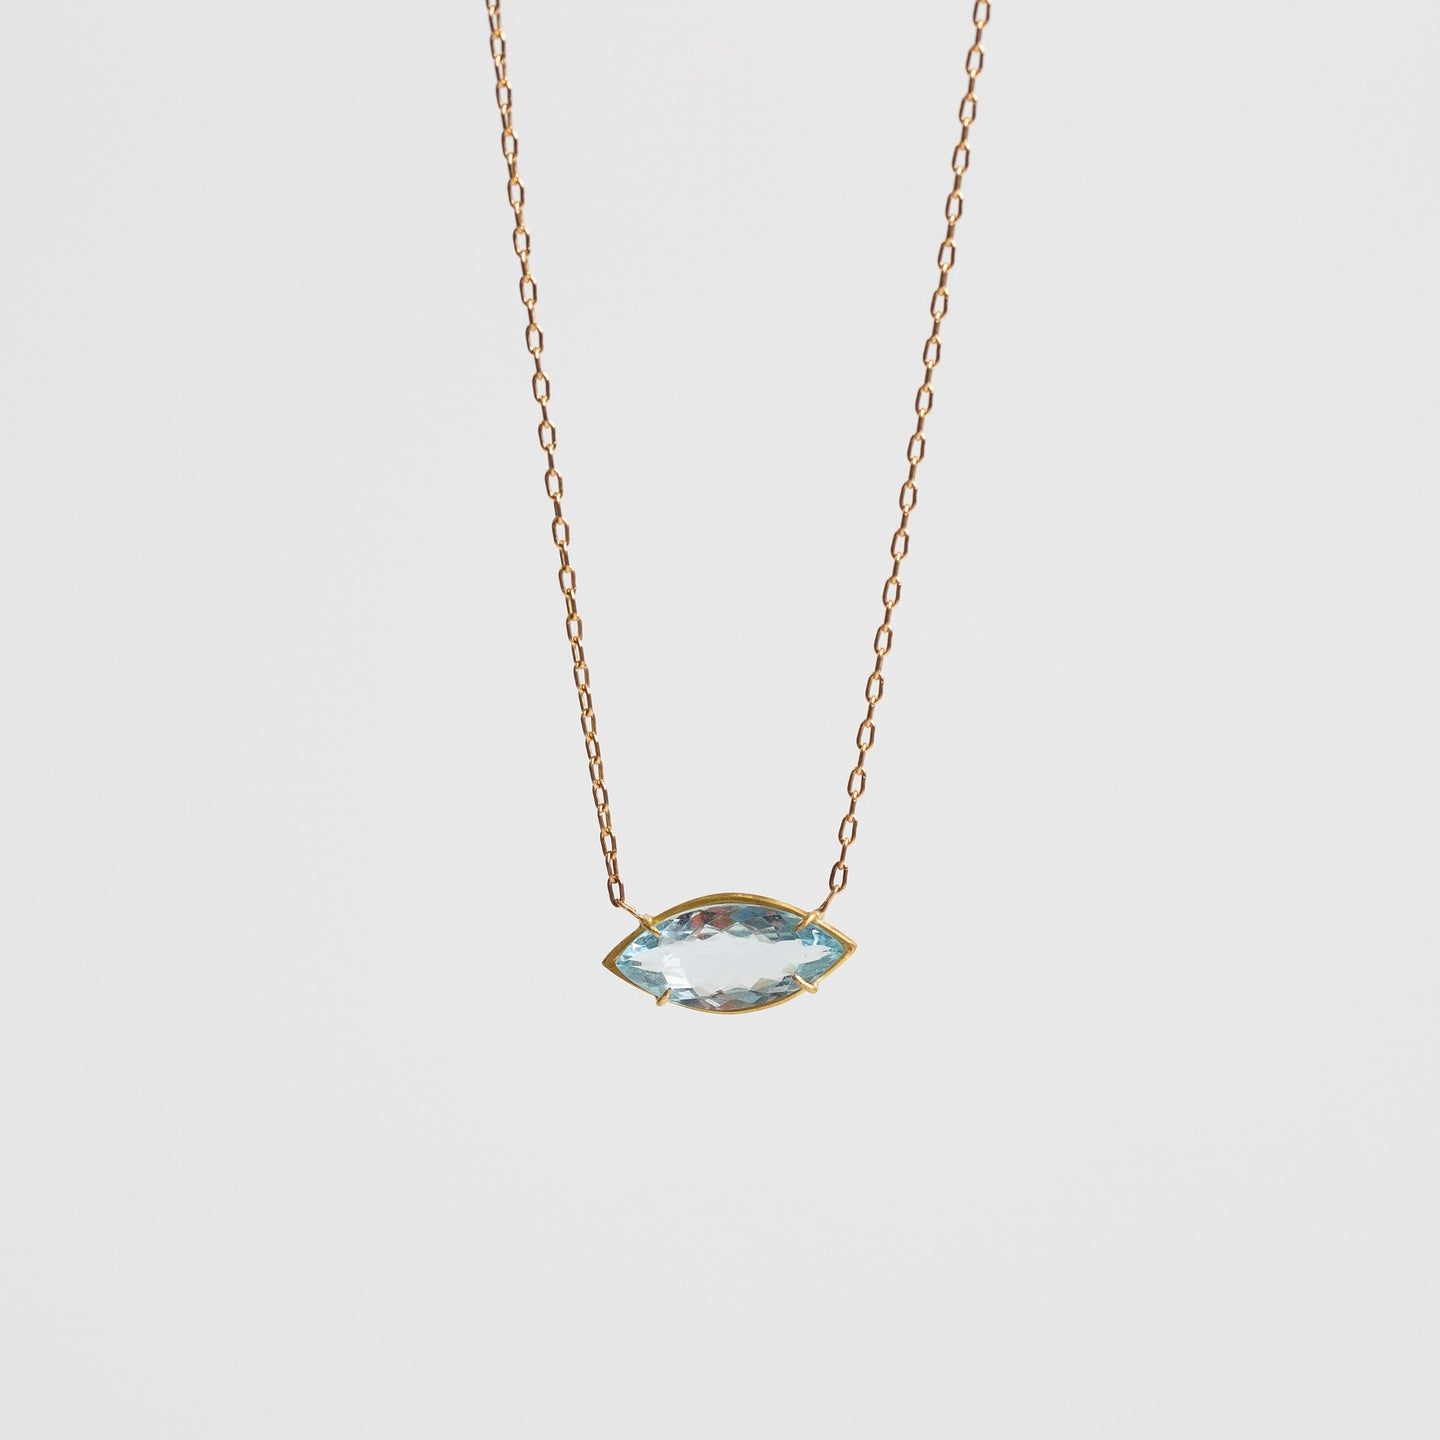 Rosanne Pugliese <br>Aquamarine Third Eye Pendant necklace